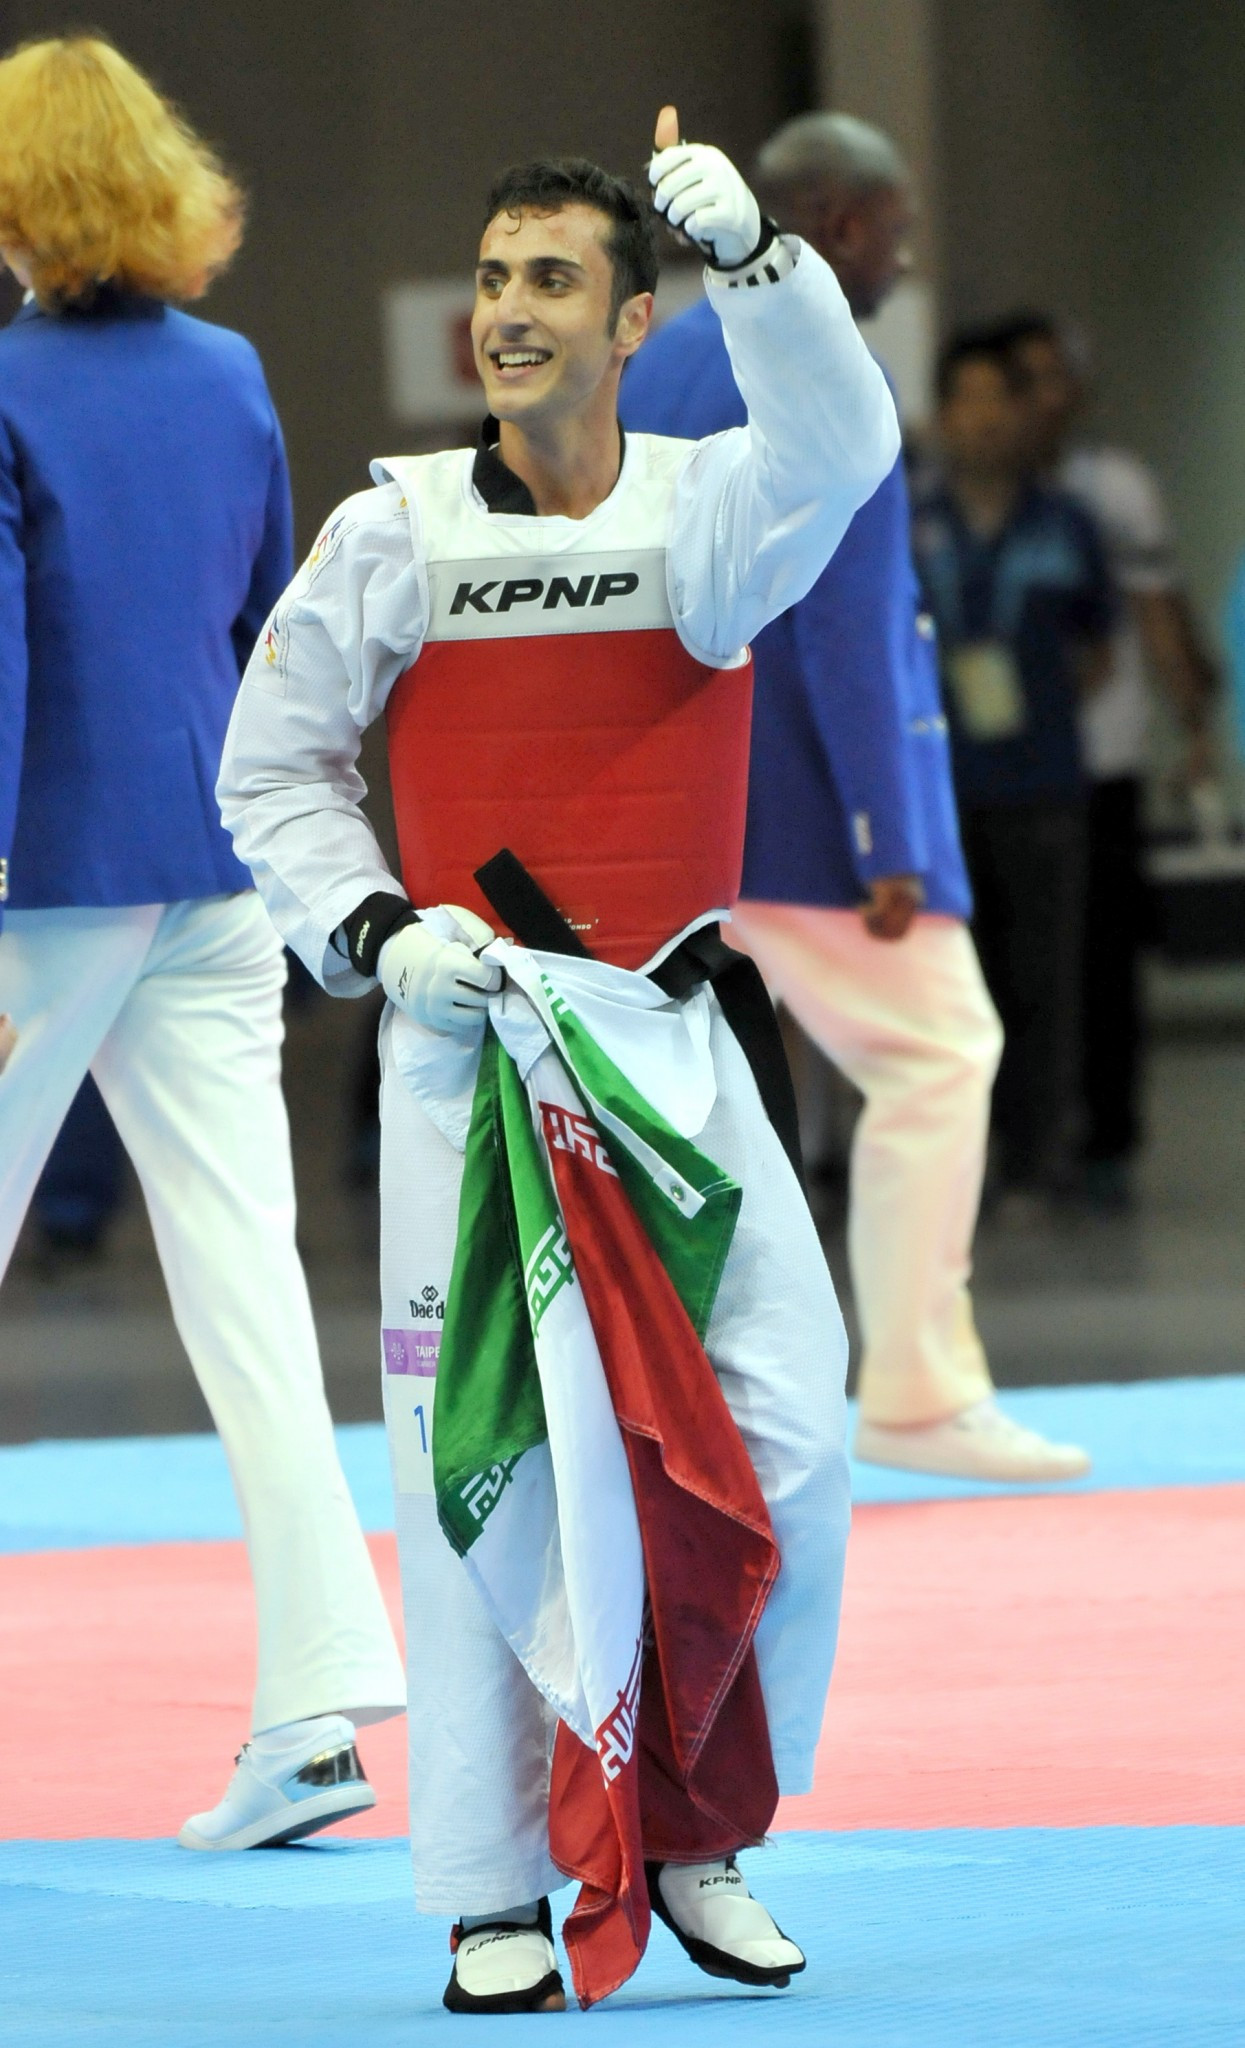 Hadi Tiranvalipour won the men's under 58kg taekwondo event ©Taipei 2017